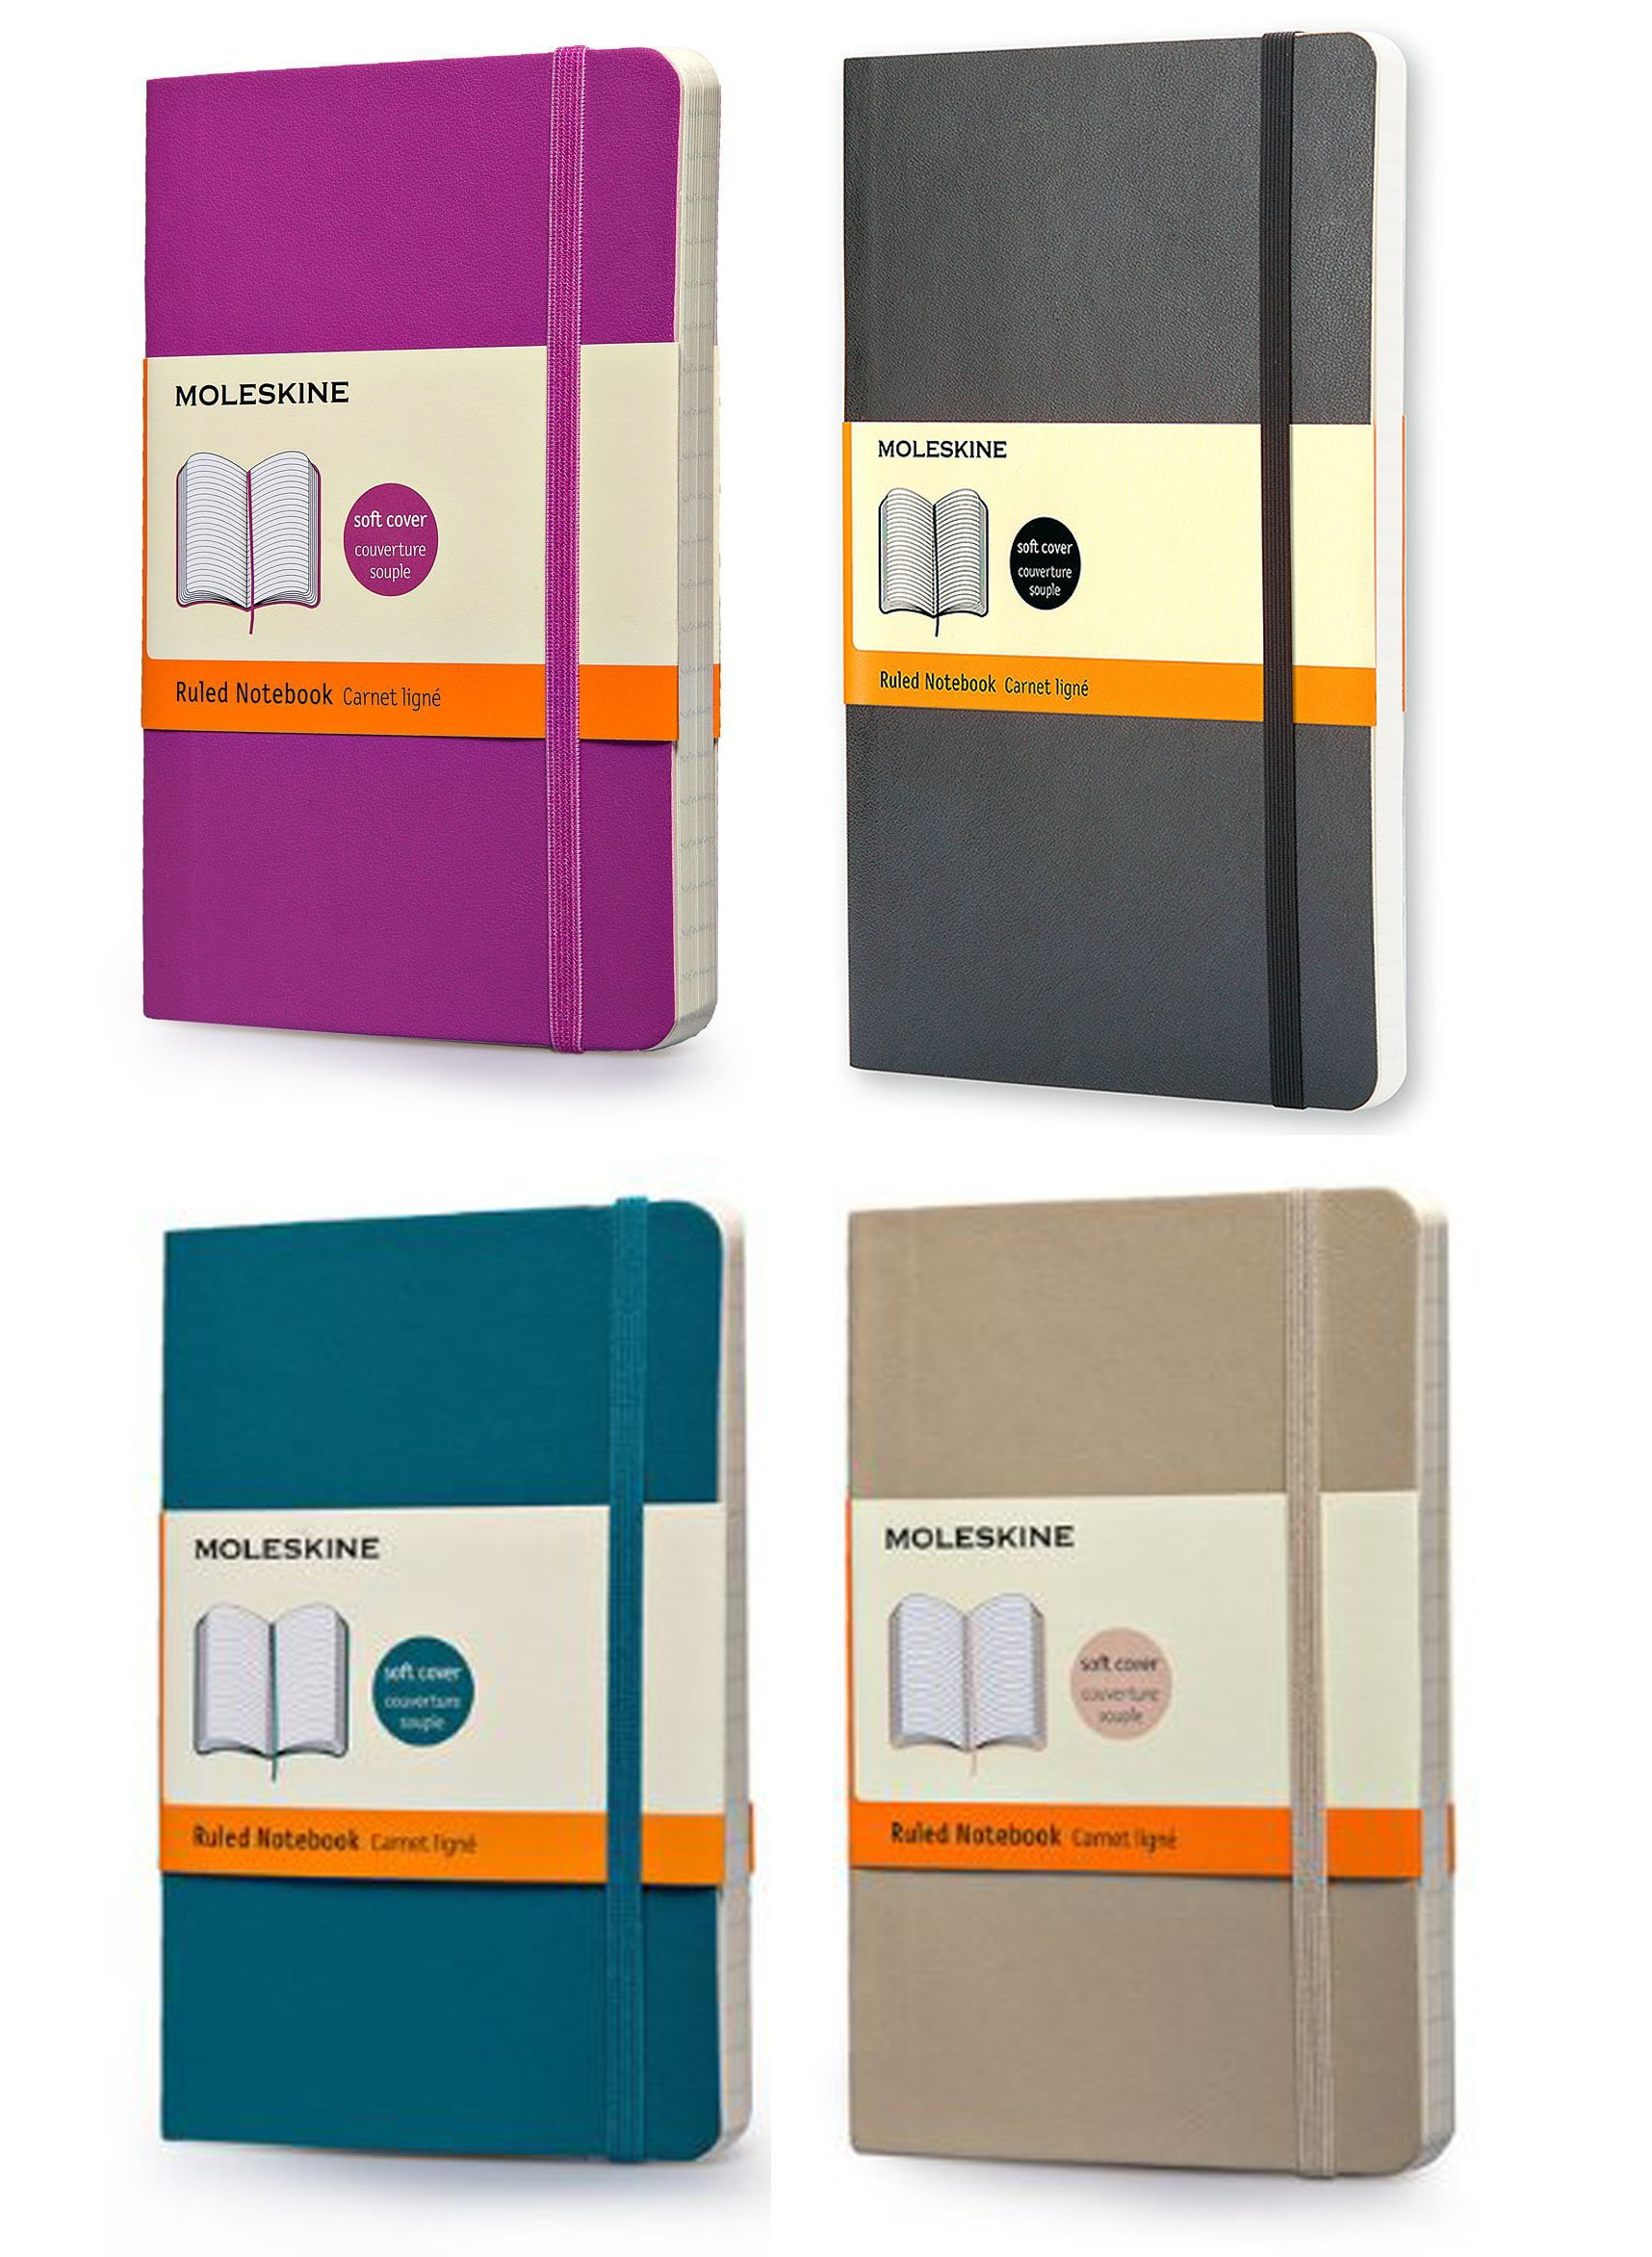 Pack of 4 Moleskine Classic Colored Notebook, Pocket, Ruled, Underwater Blue,Orchid Purple,Khaki Beige, Black, Soft Cover (3.5 x 5.5)